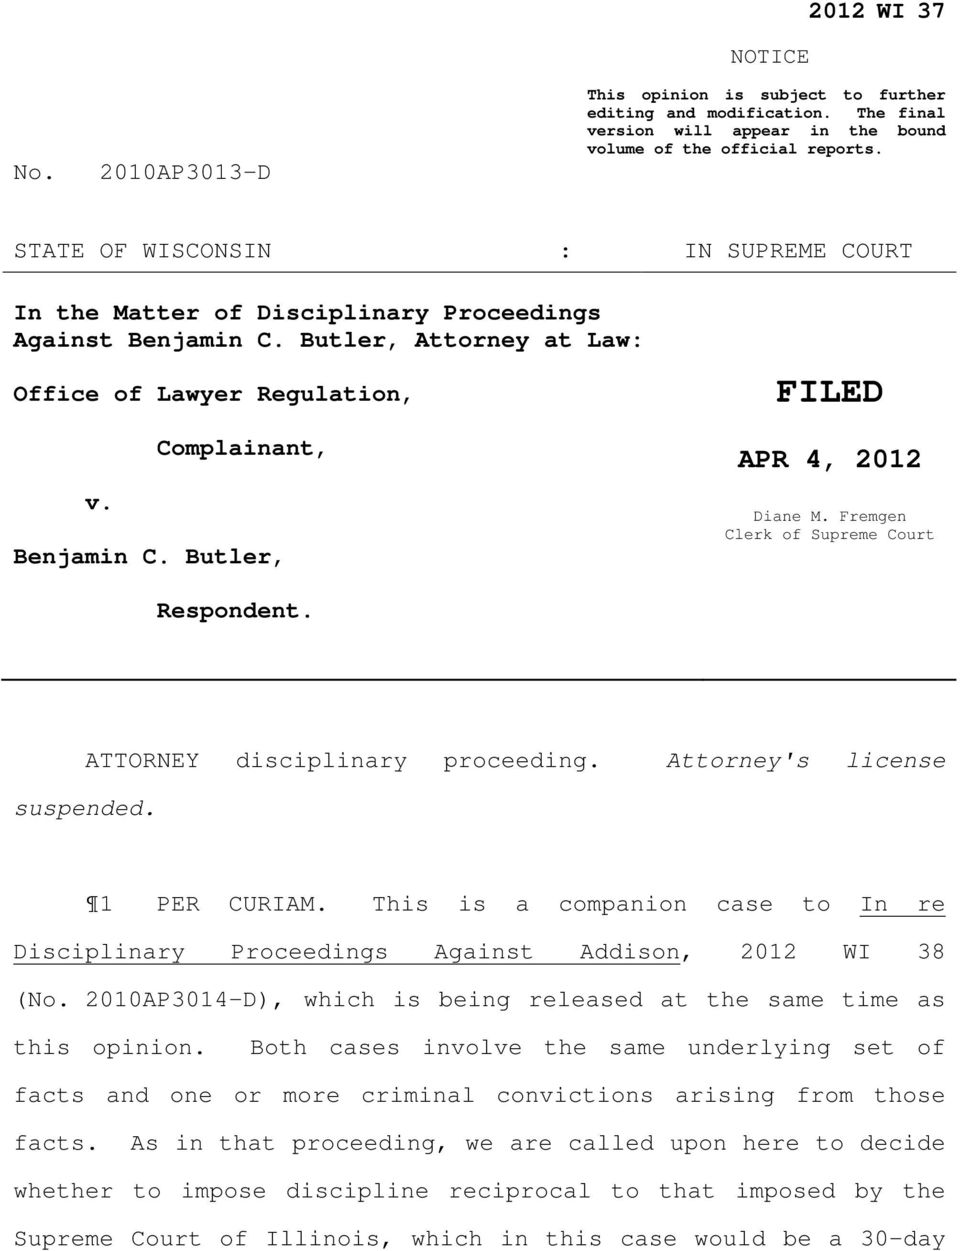 Butler, FILED APR 4, 2012 Diane M. Fremgen Clerk of Supreme Court Respondent. suspended. ATTORNEY disciplinary proceeding. Attorney's license 1 PER CURIAM.